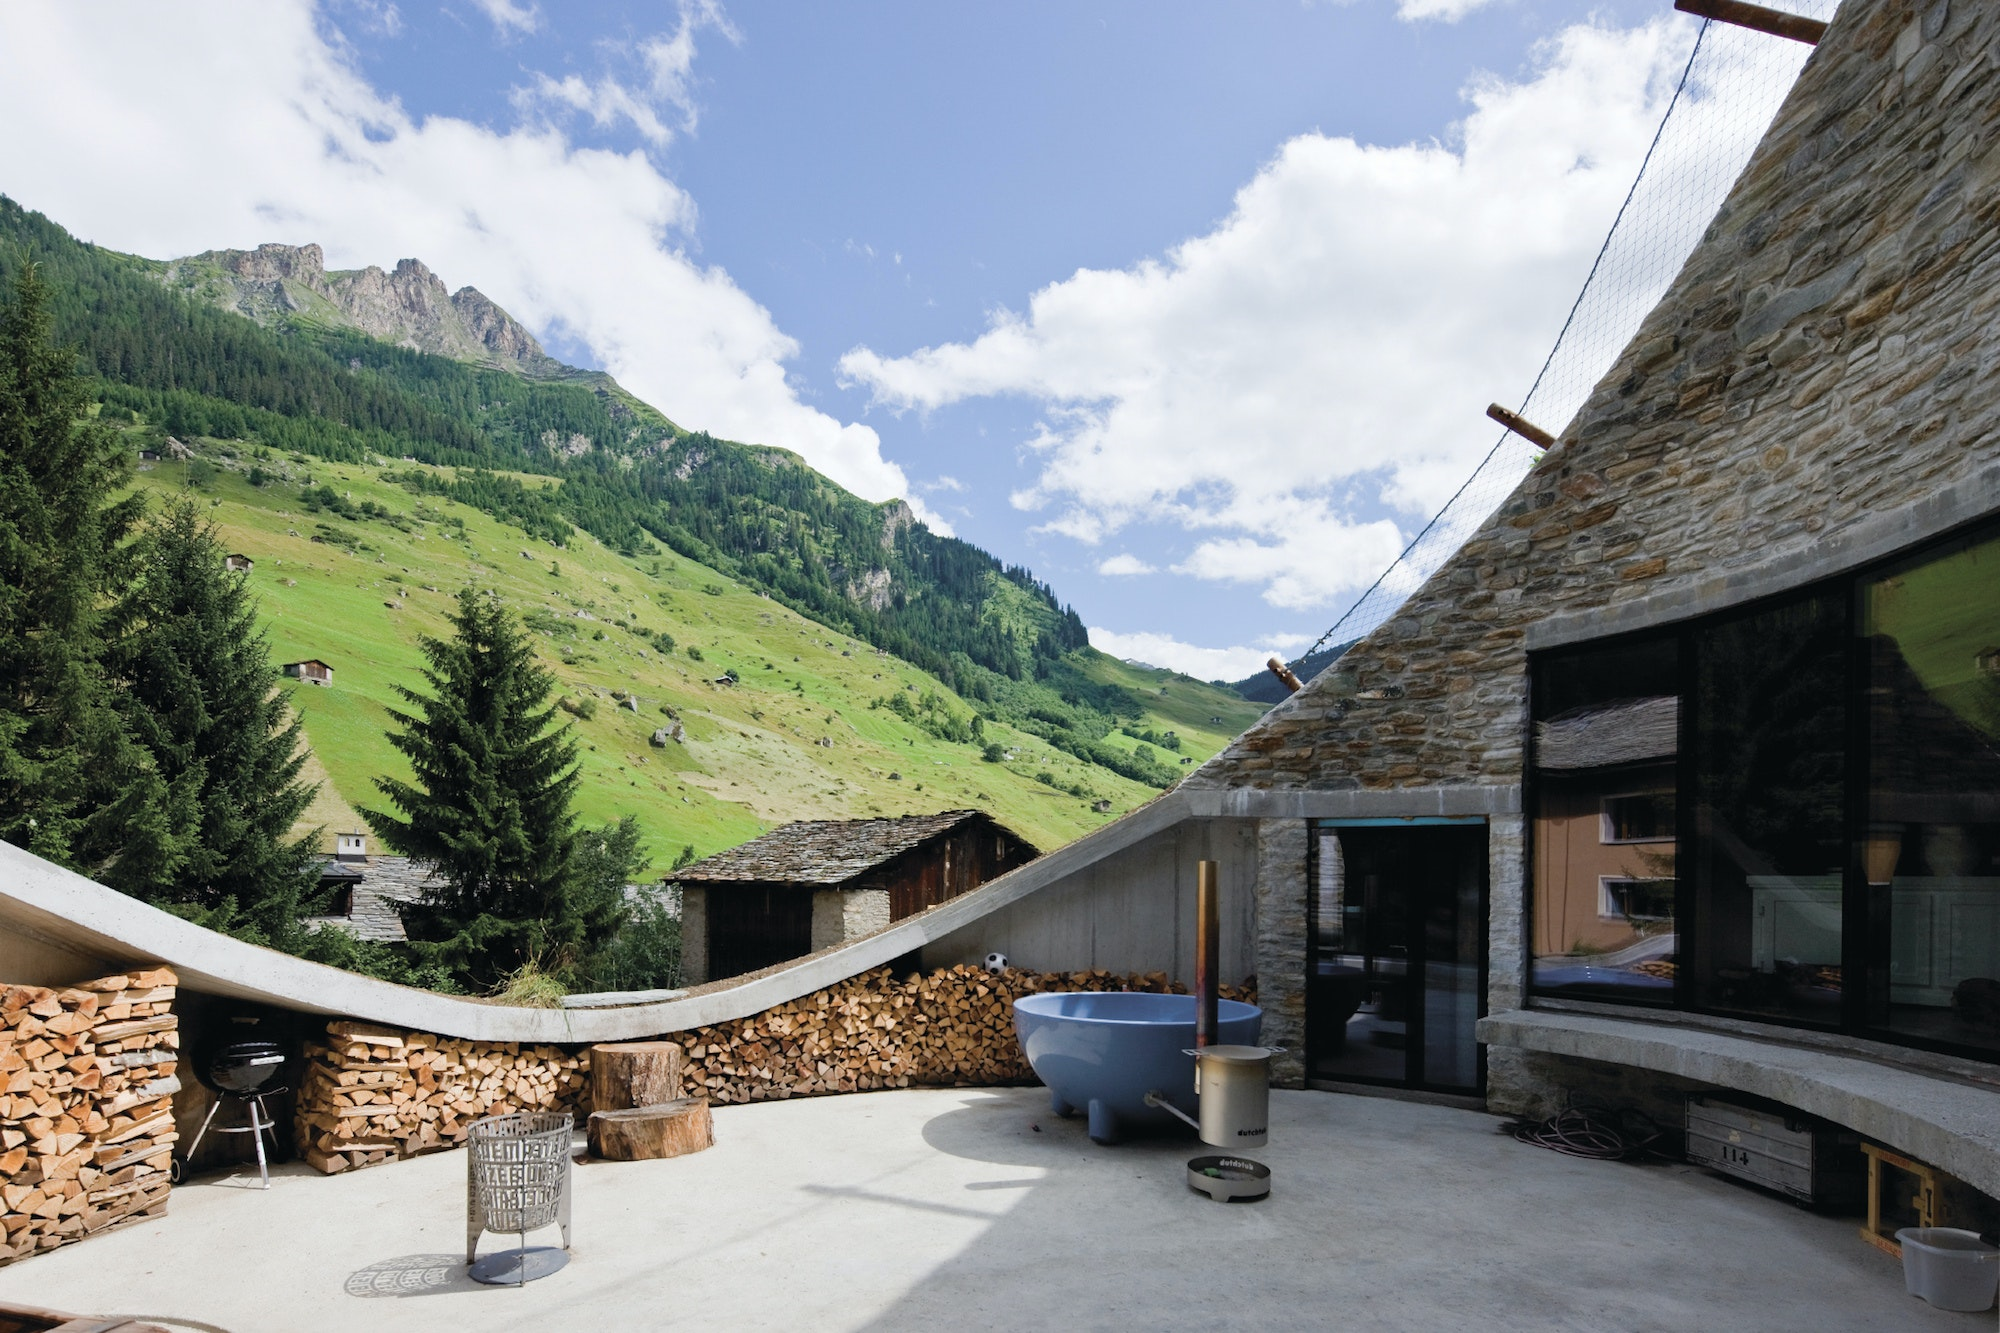 """Villa Vals"" is carved into a mountainside in the Swiss Alps, surrounded by a secluded garden."